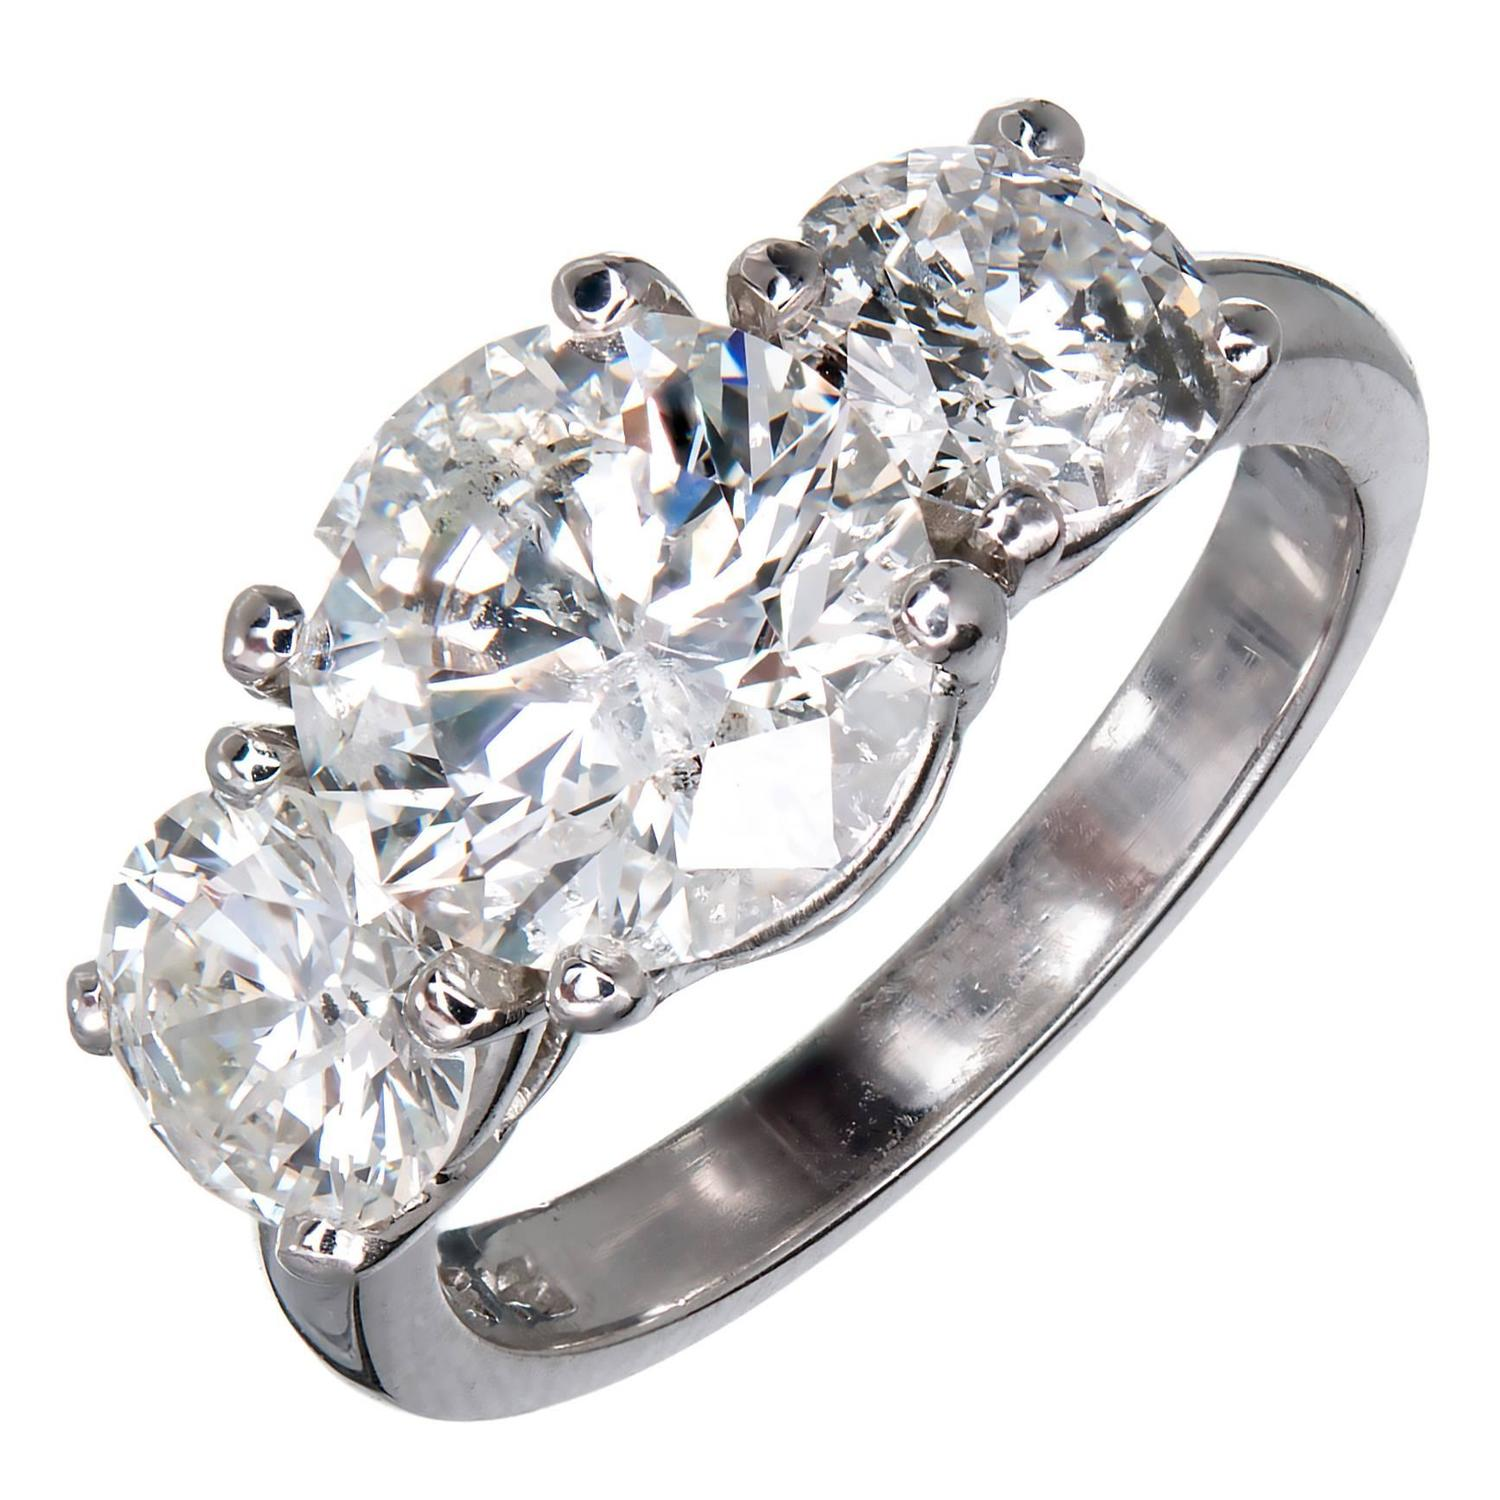 on selwyn cat a oval blog hand adiamor most adorable rings diamond pic proposal ever ring stories engagement gorgeous